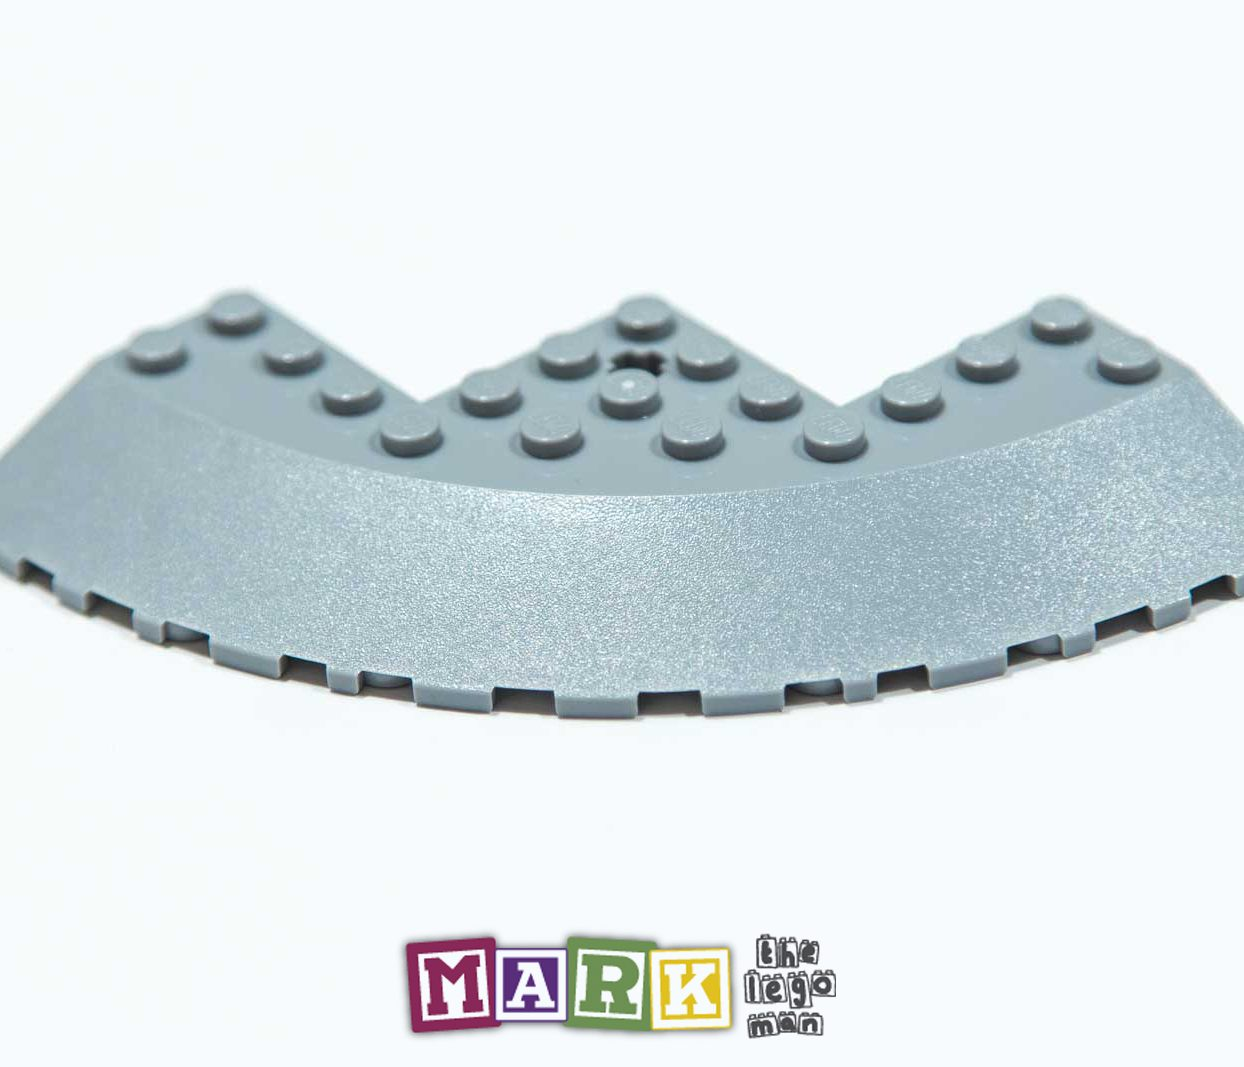 New Lego 58846 10x10 Circle 90D, Wry 18D 6063879